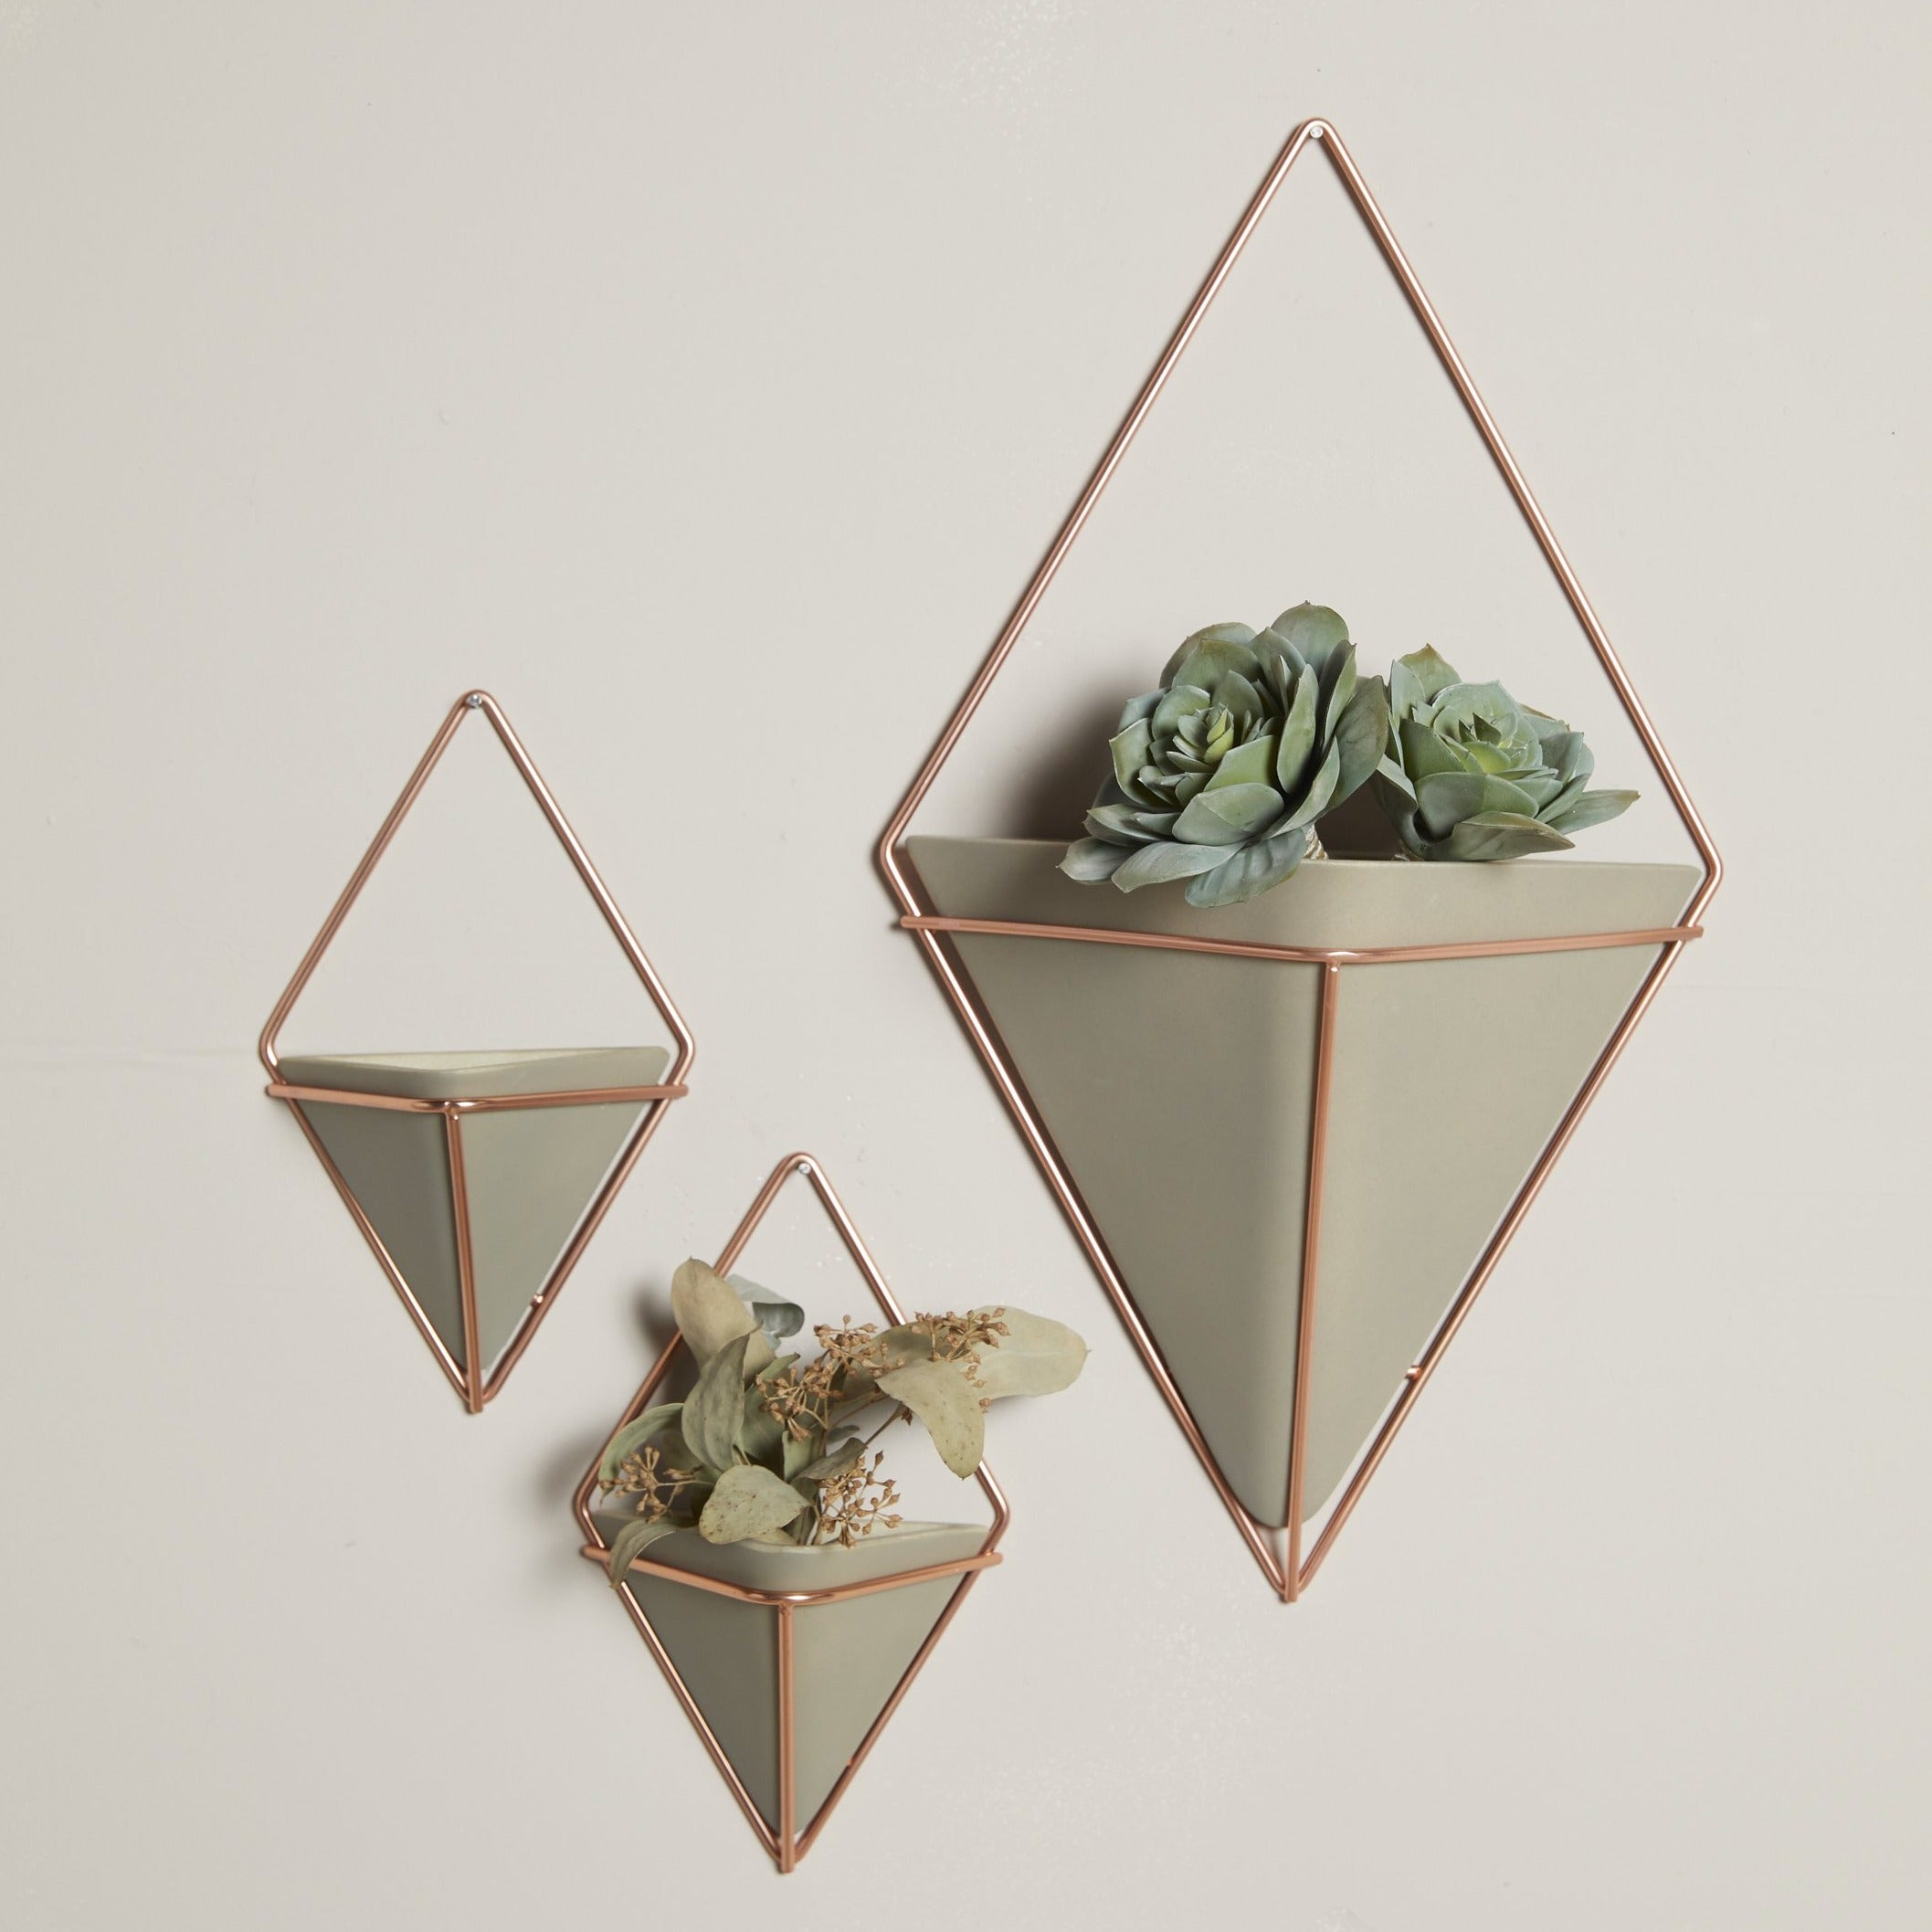 Trigg Small Wall Vessel - picnic-sf